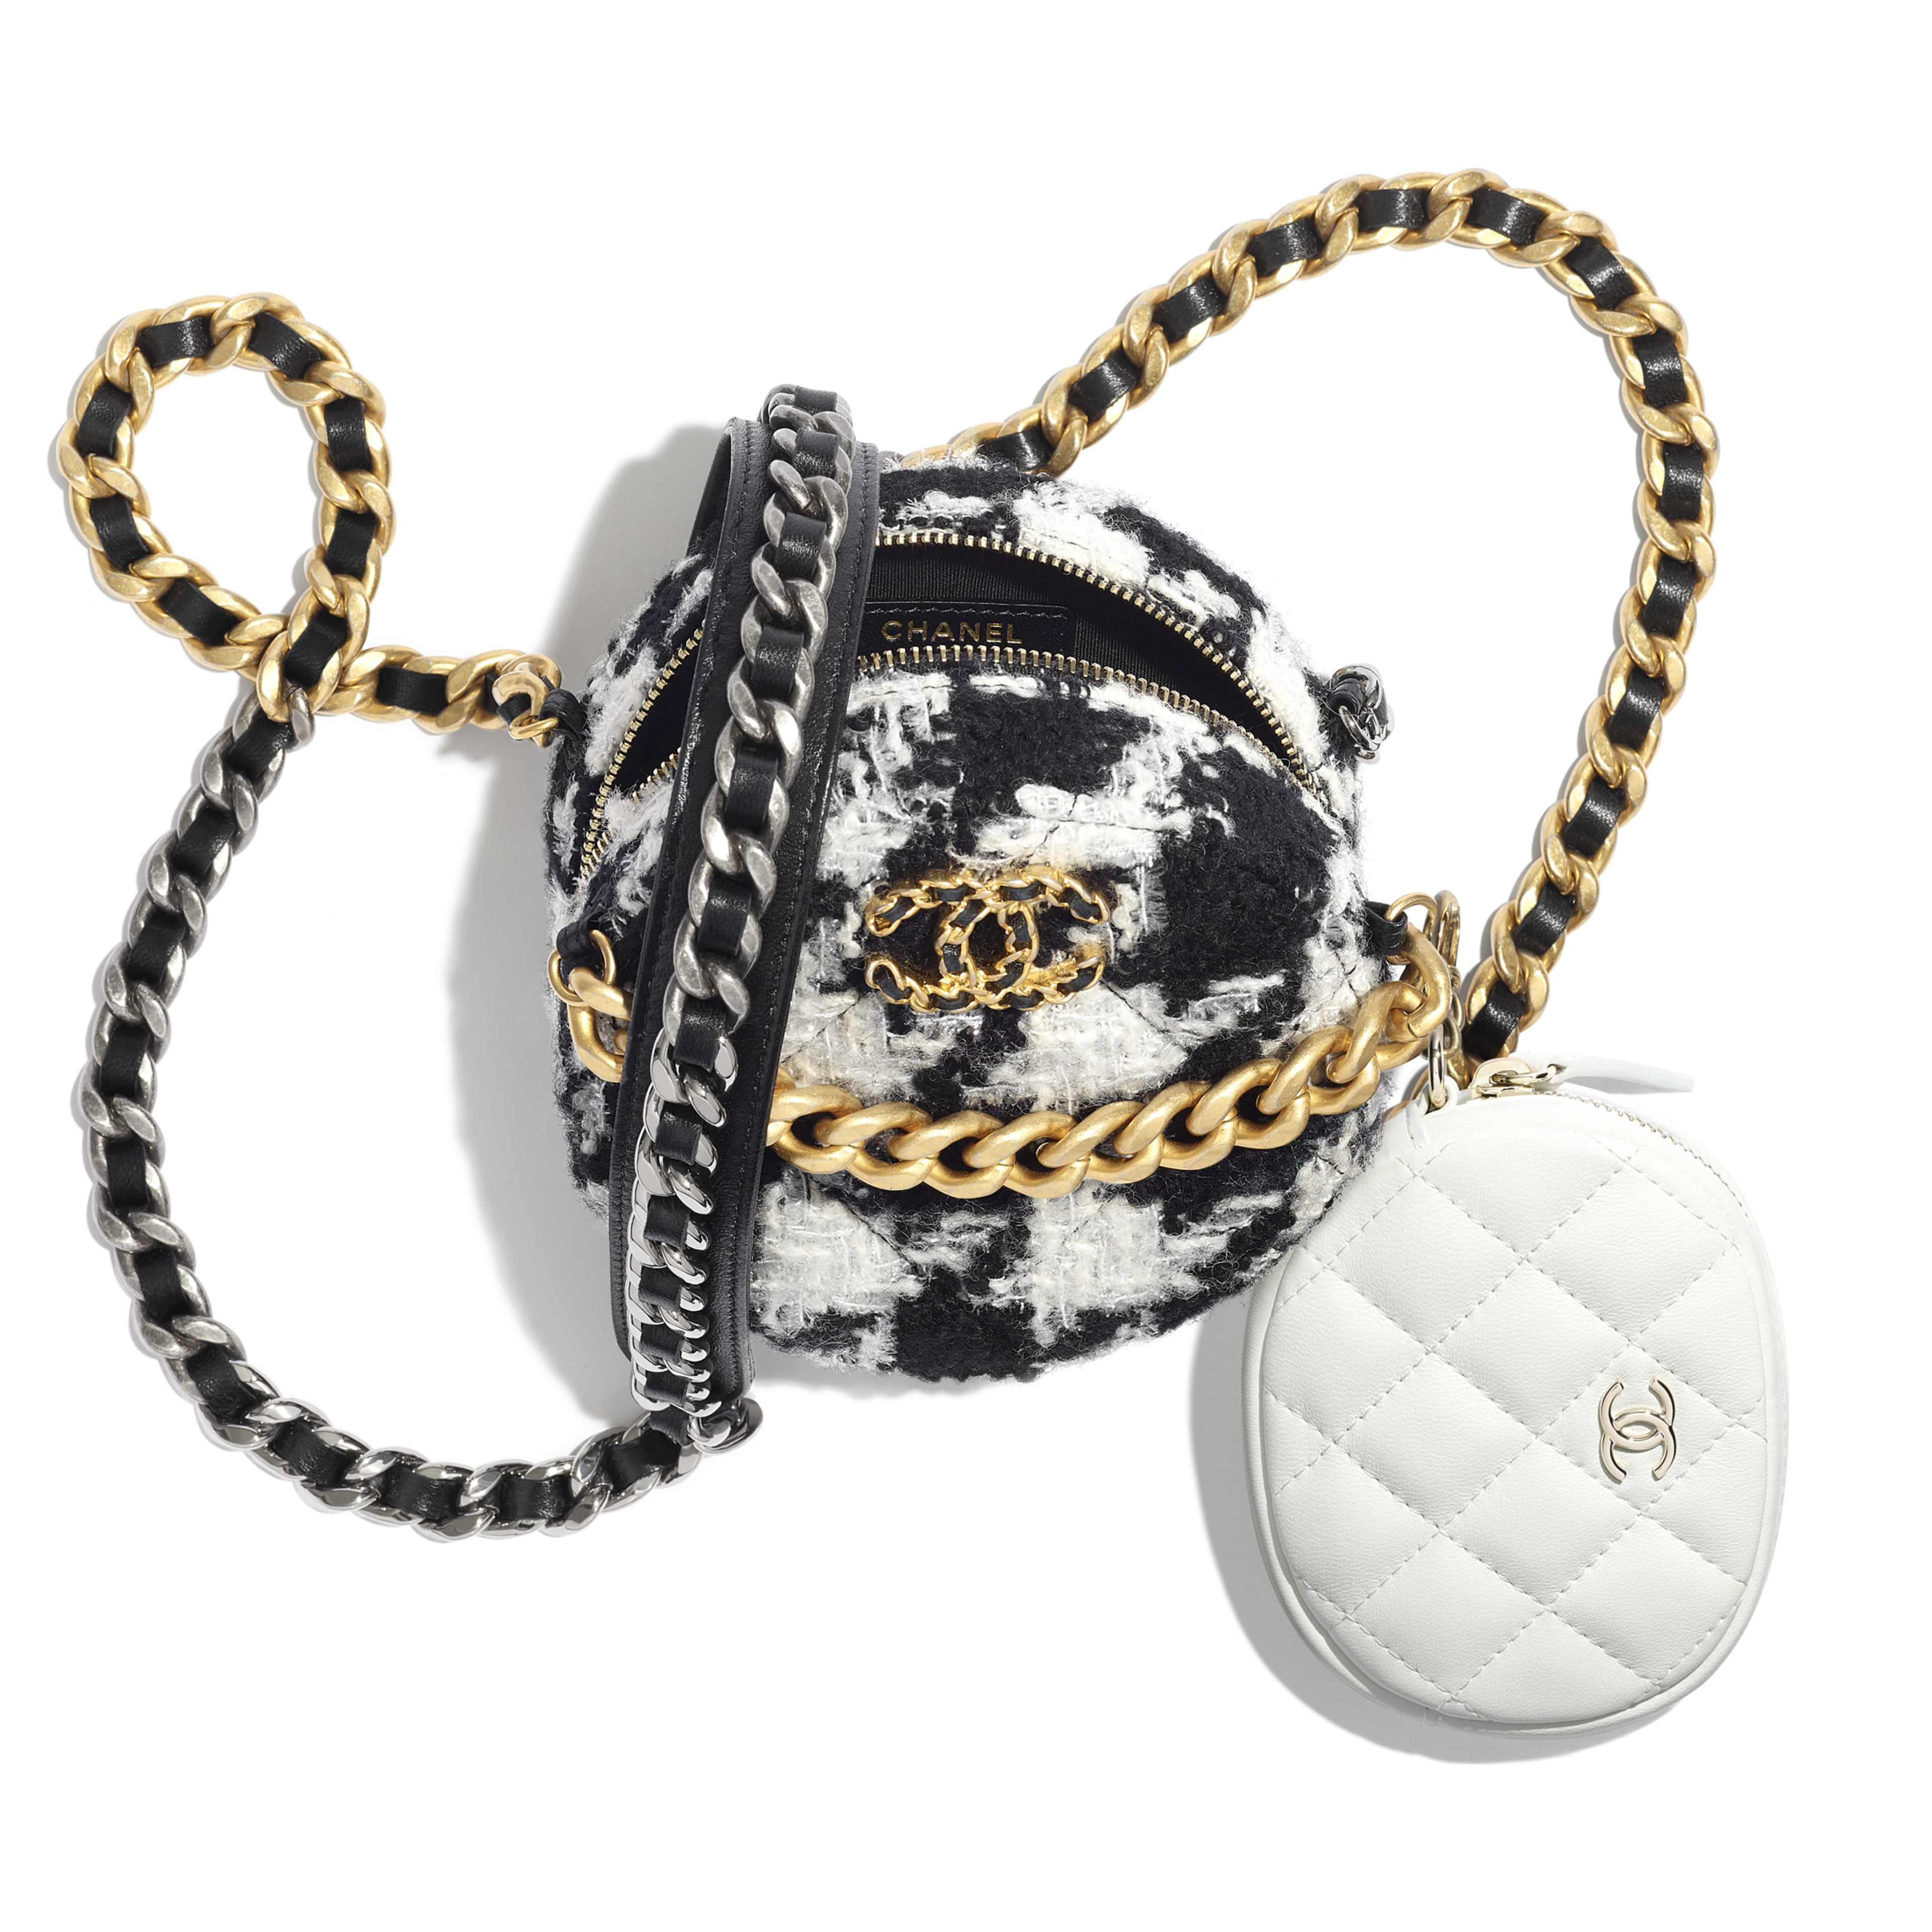 CHANEL 19 Clutch with Chain & Coin Purse - Black & White - Wool Tweed, Lambskin, Gold-Tone, Silver-Tone & Ruthenium-Finish Metal - Other view - see full sized version